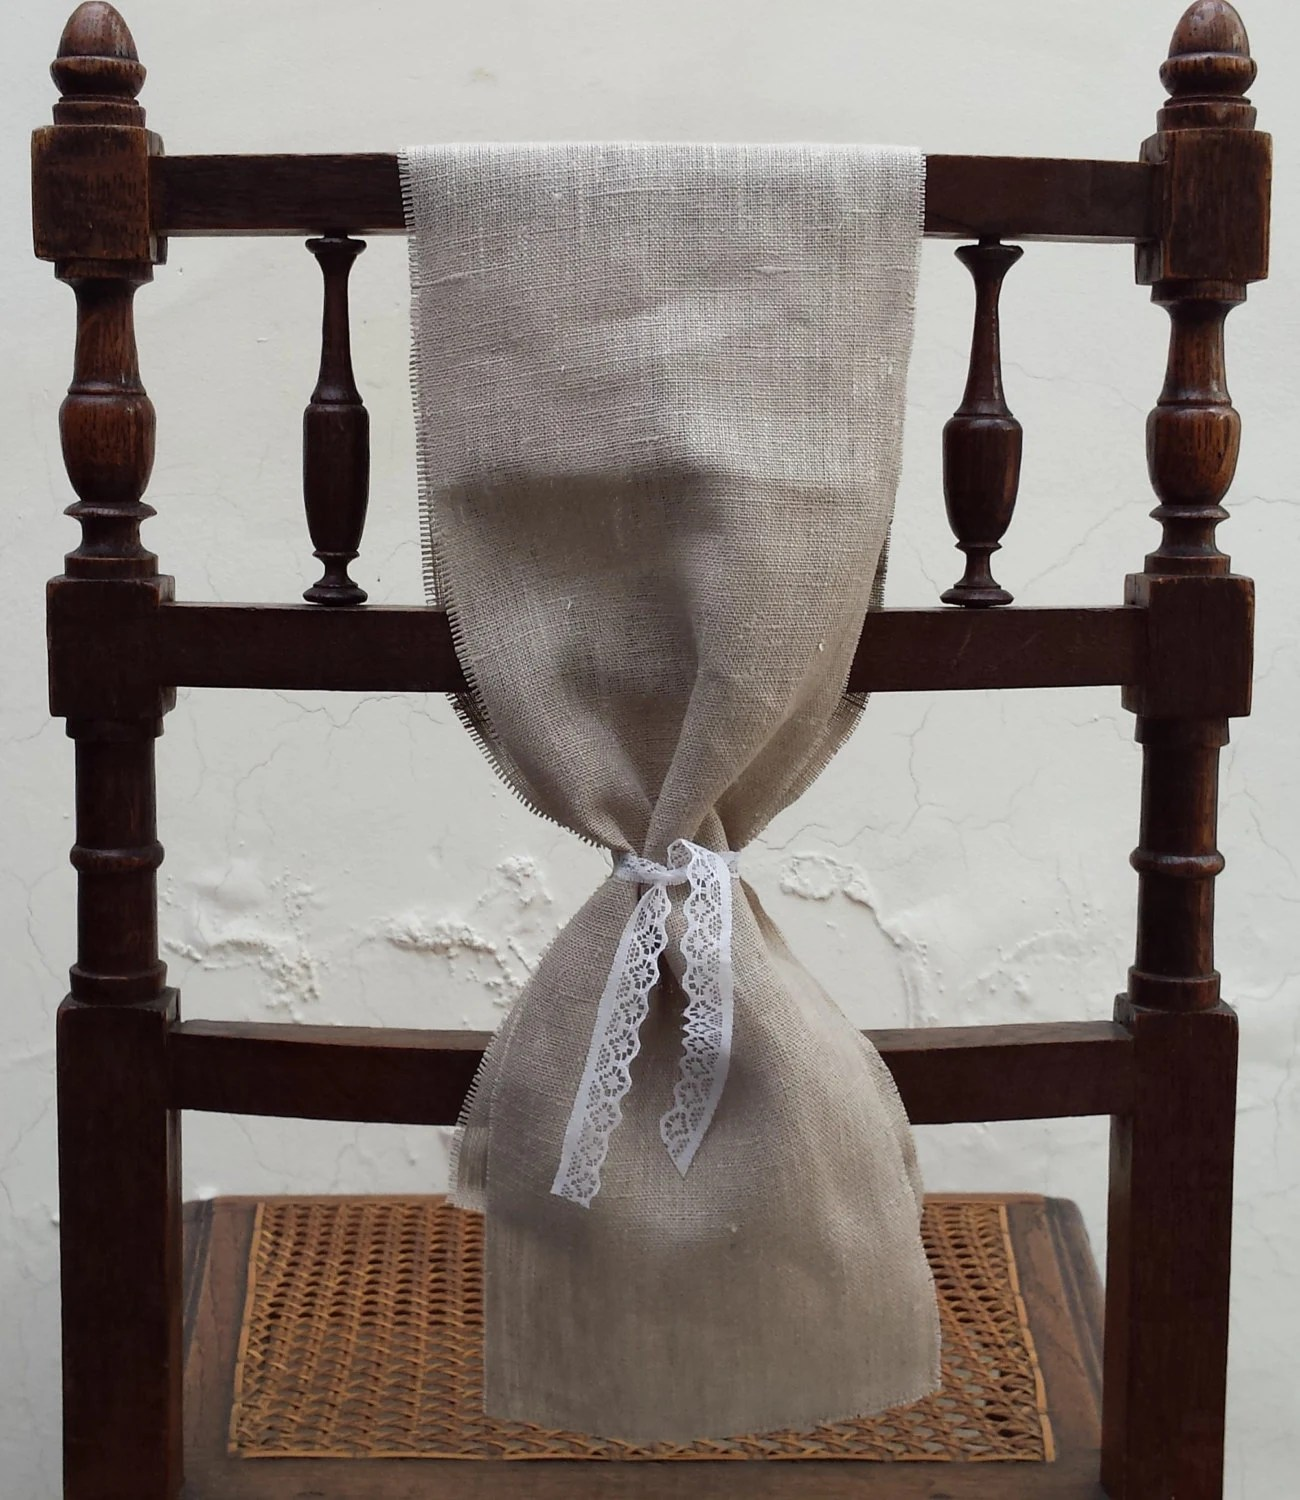 simply elegant chair covers and linens folding stool 10 linen sashes rustic wedding decor